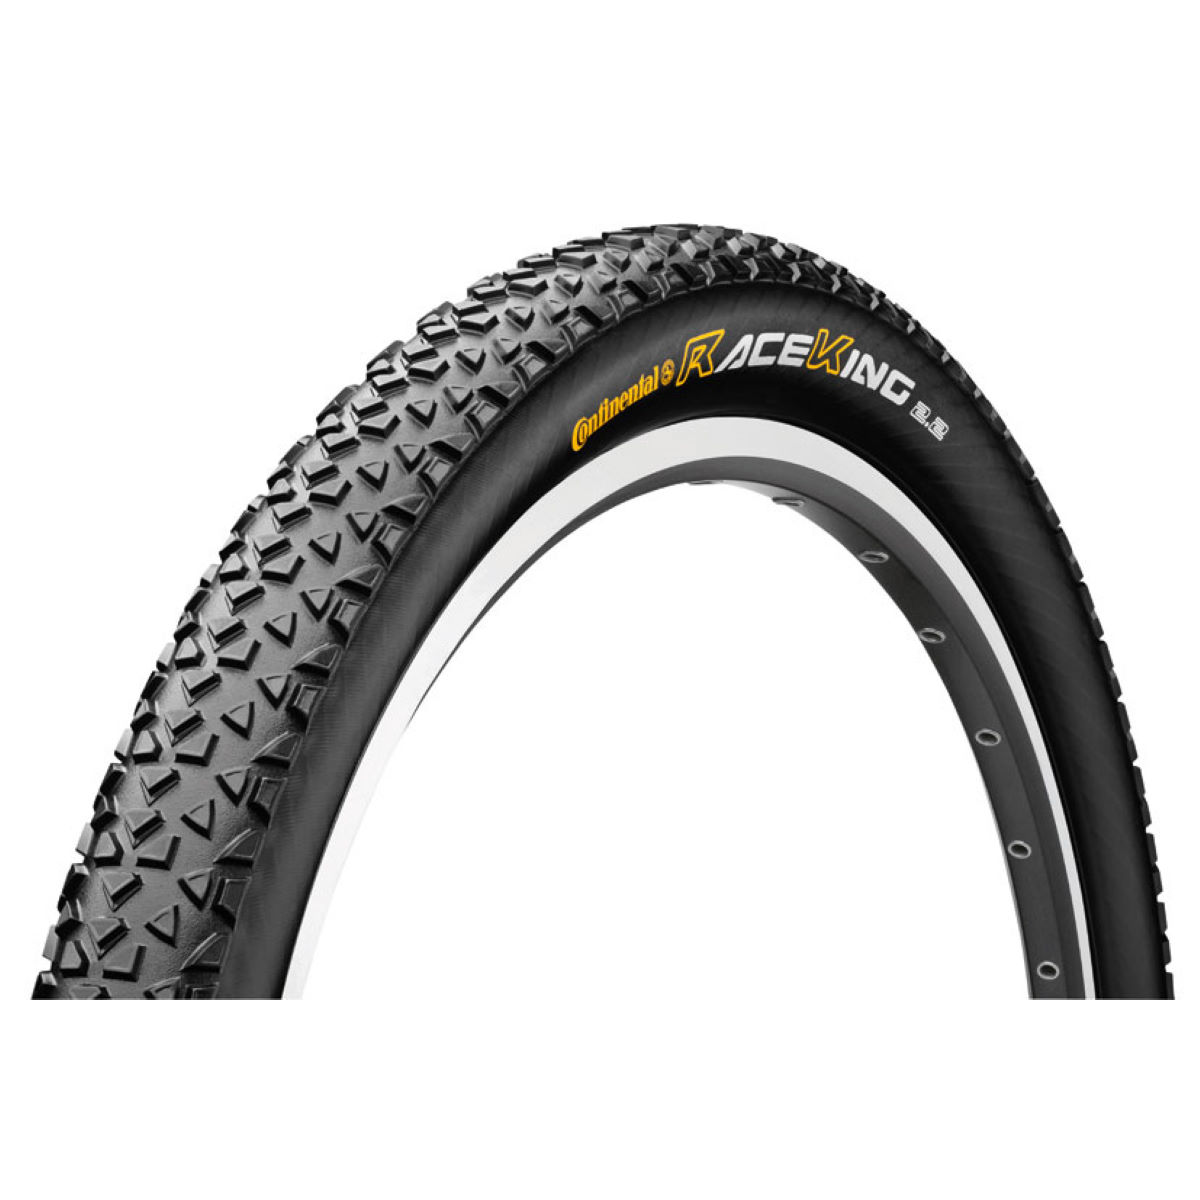 Pneu VTT Continental Race King Pure Grip (souple) - 2' 26' Noir